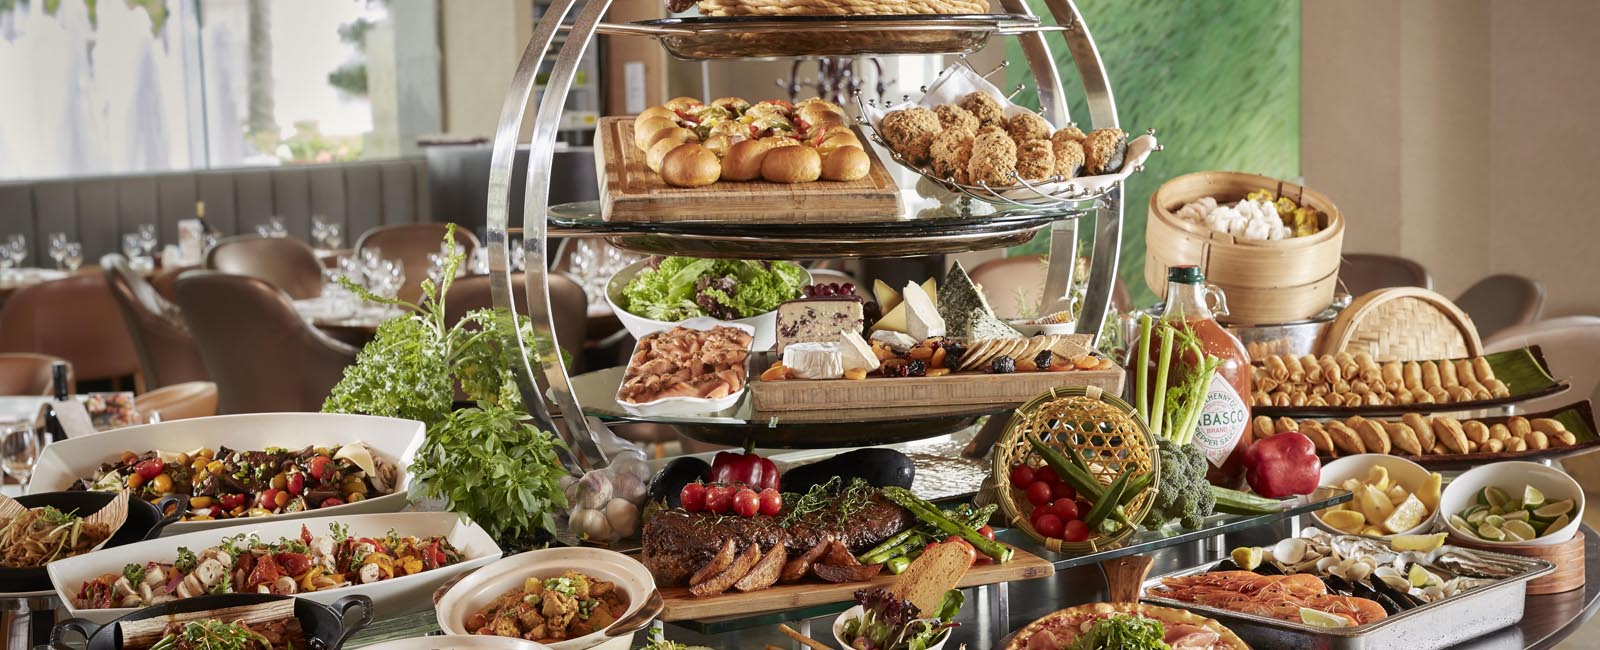 Les Grands Buffets Reservation The Fullerton Hotels Hotel Restaurants In Singapore Dining